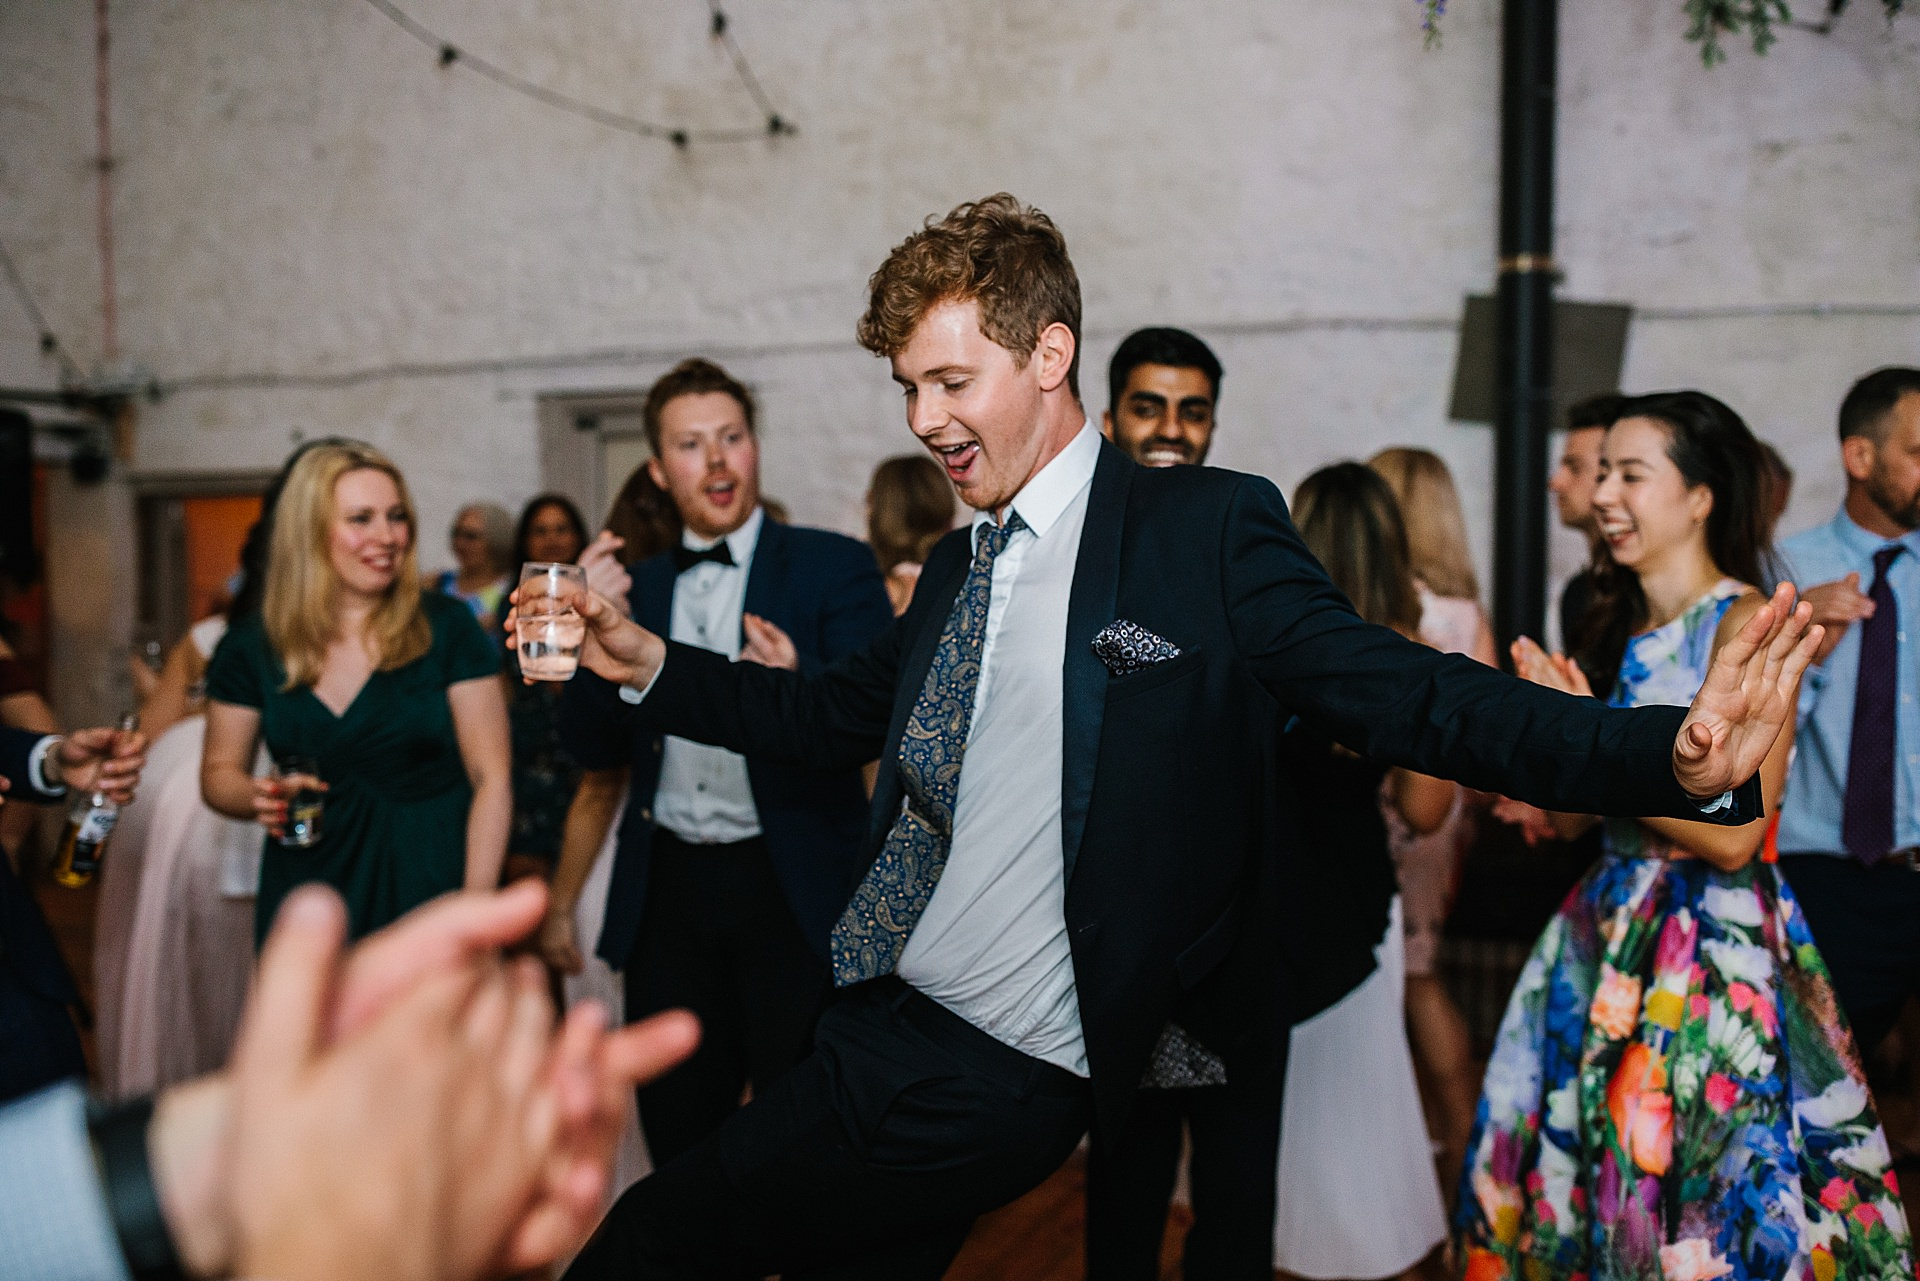 Wedding Party Dancing at wyresdale park wedding photography lancashire